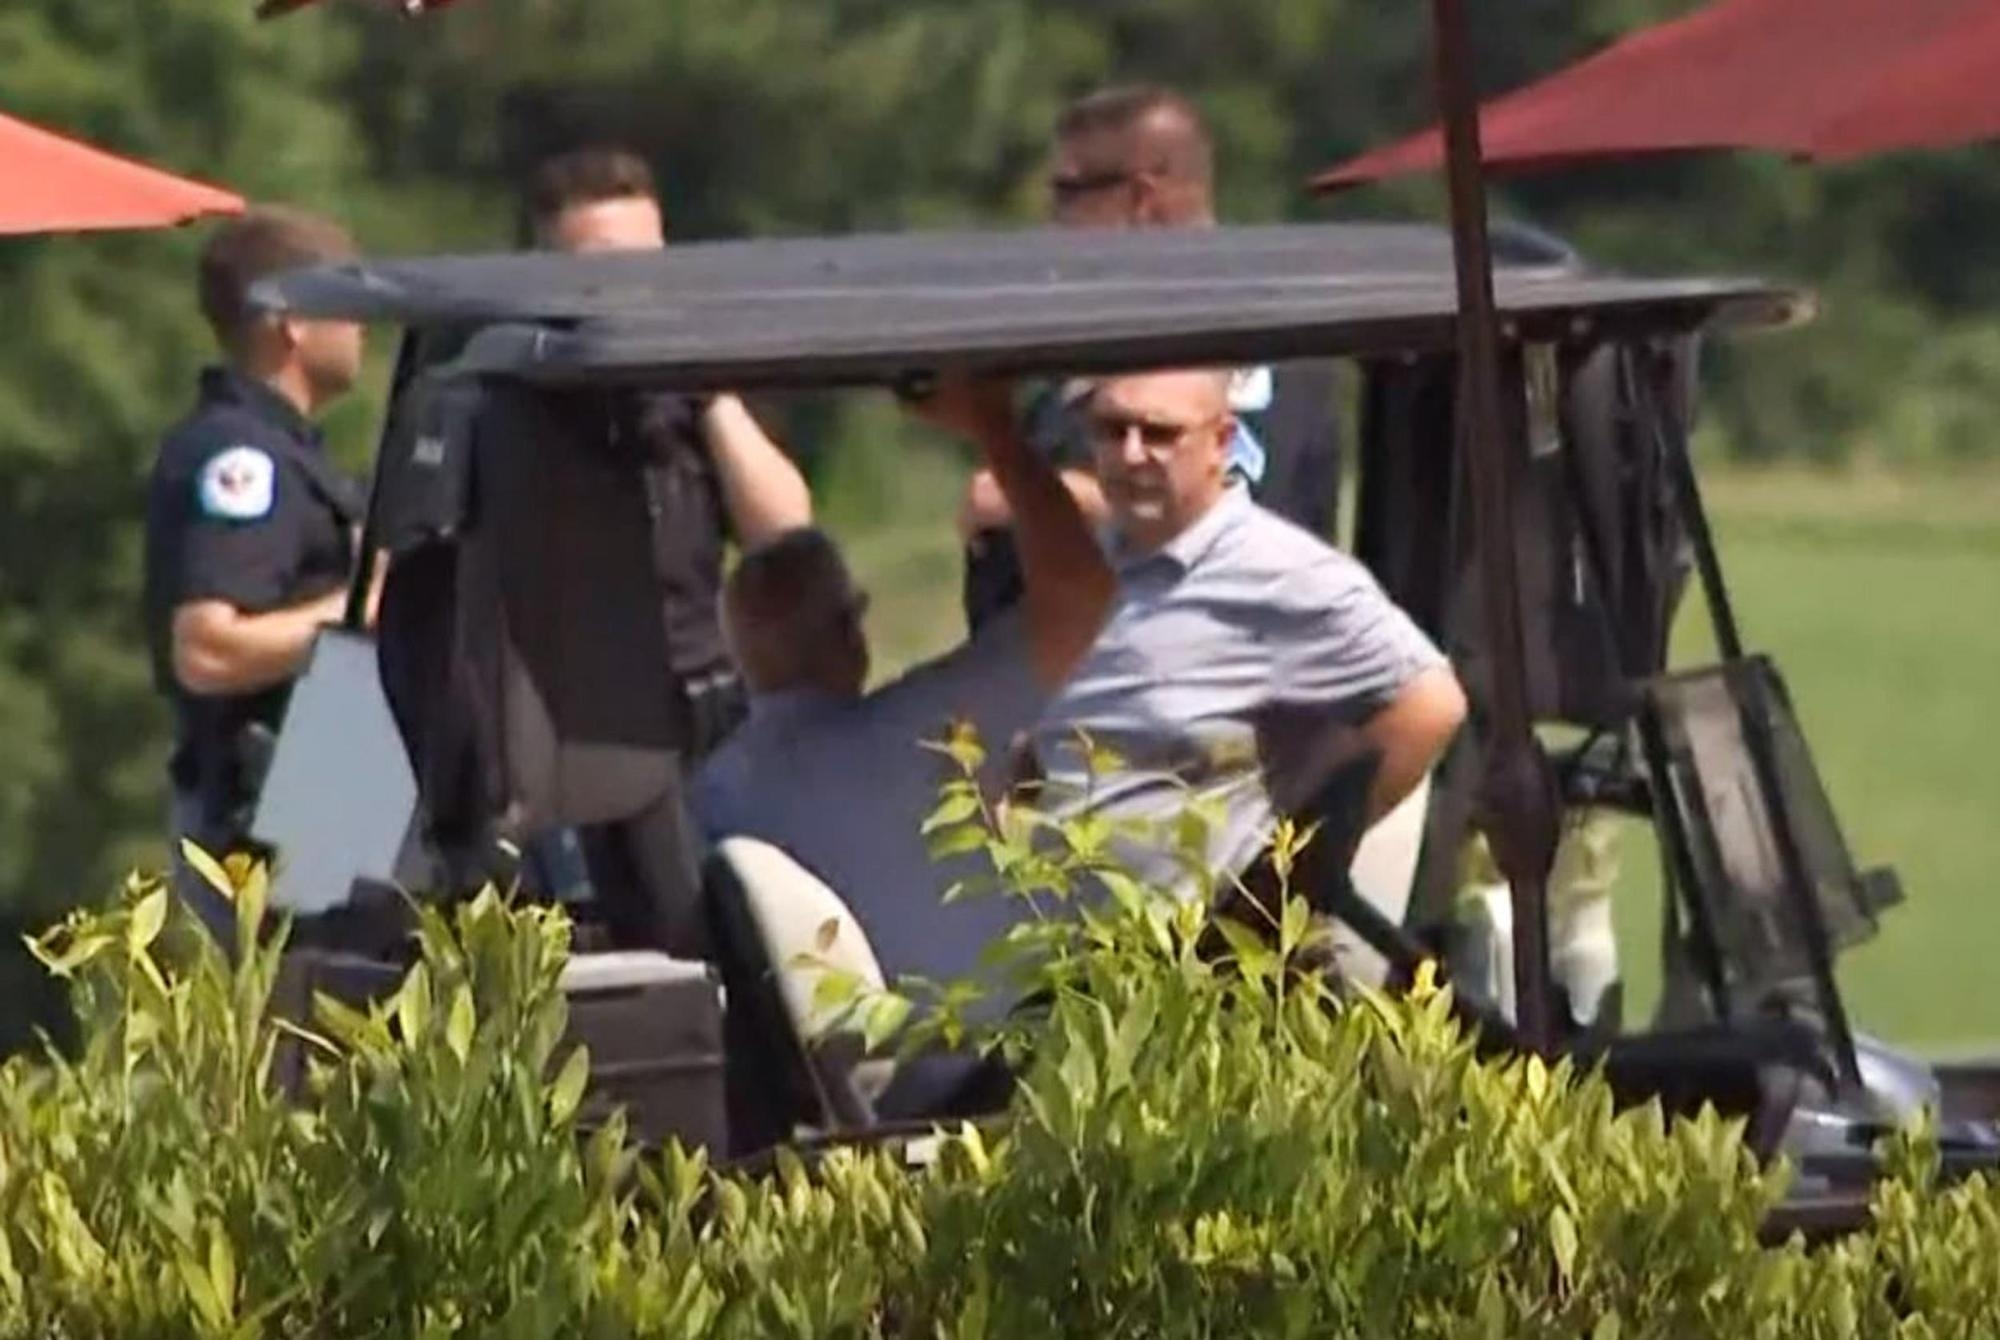 2 of 3 victims found dead at Georgia country club were bound, gagged, warrant says